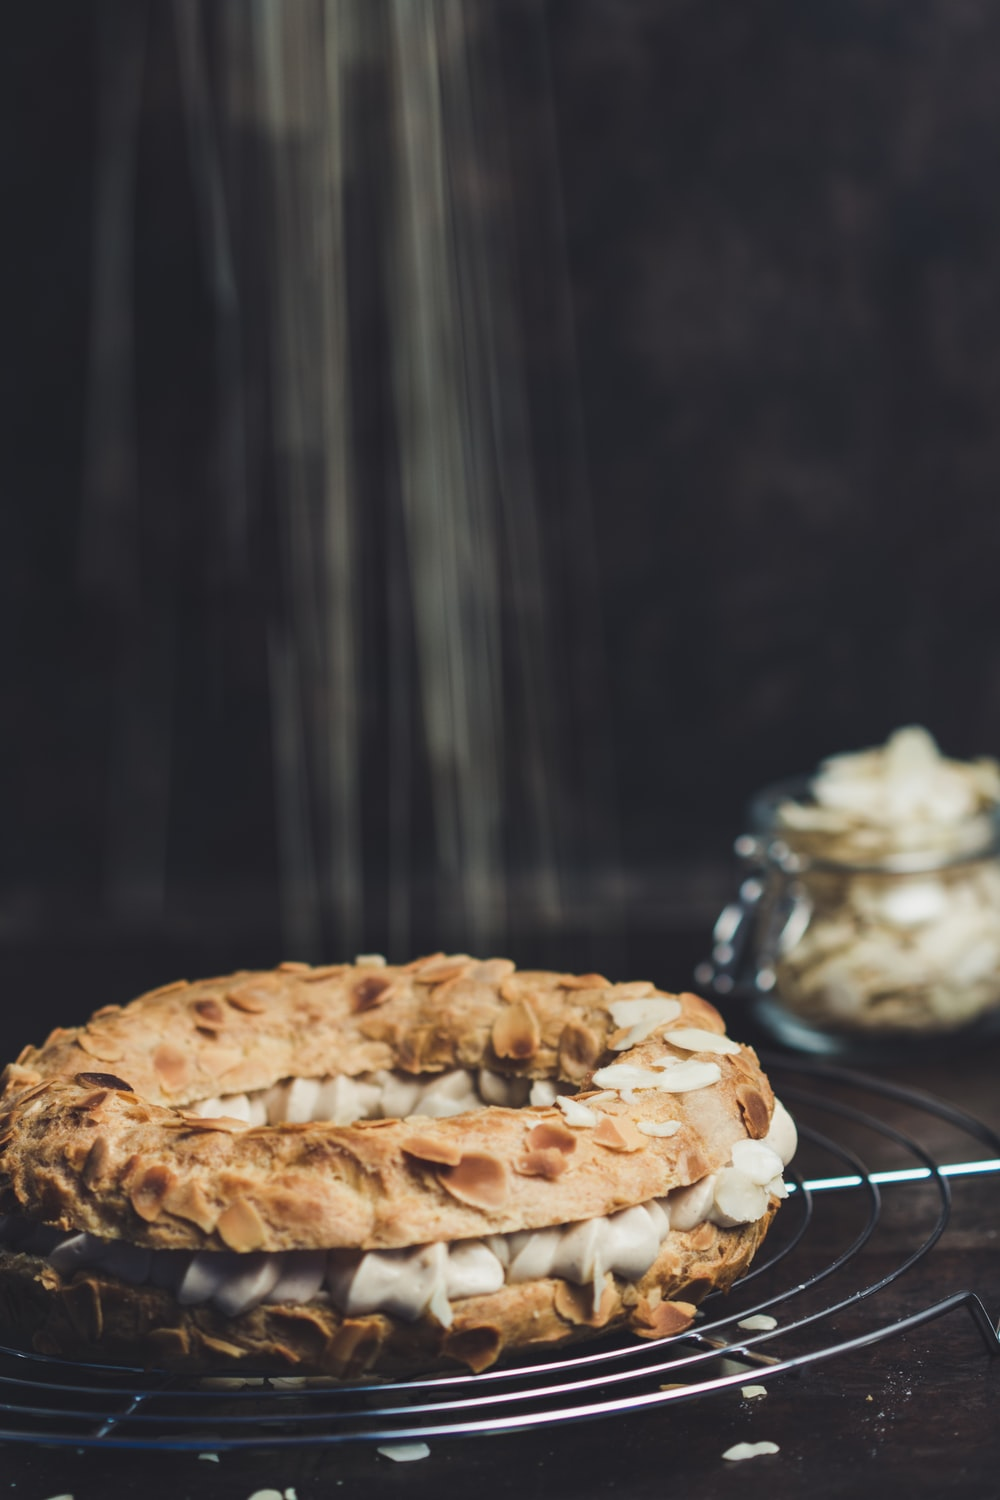 baked pastry on wire stand